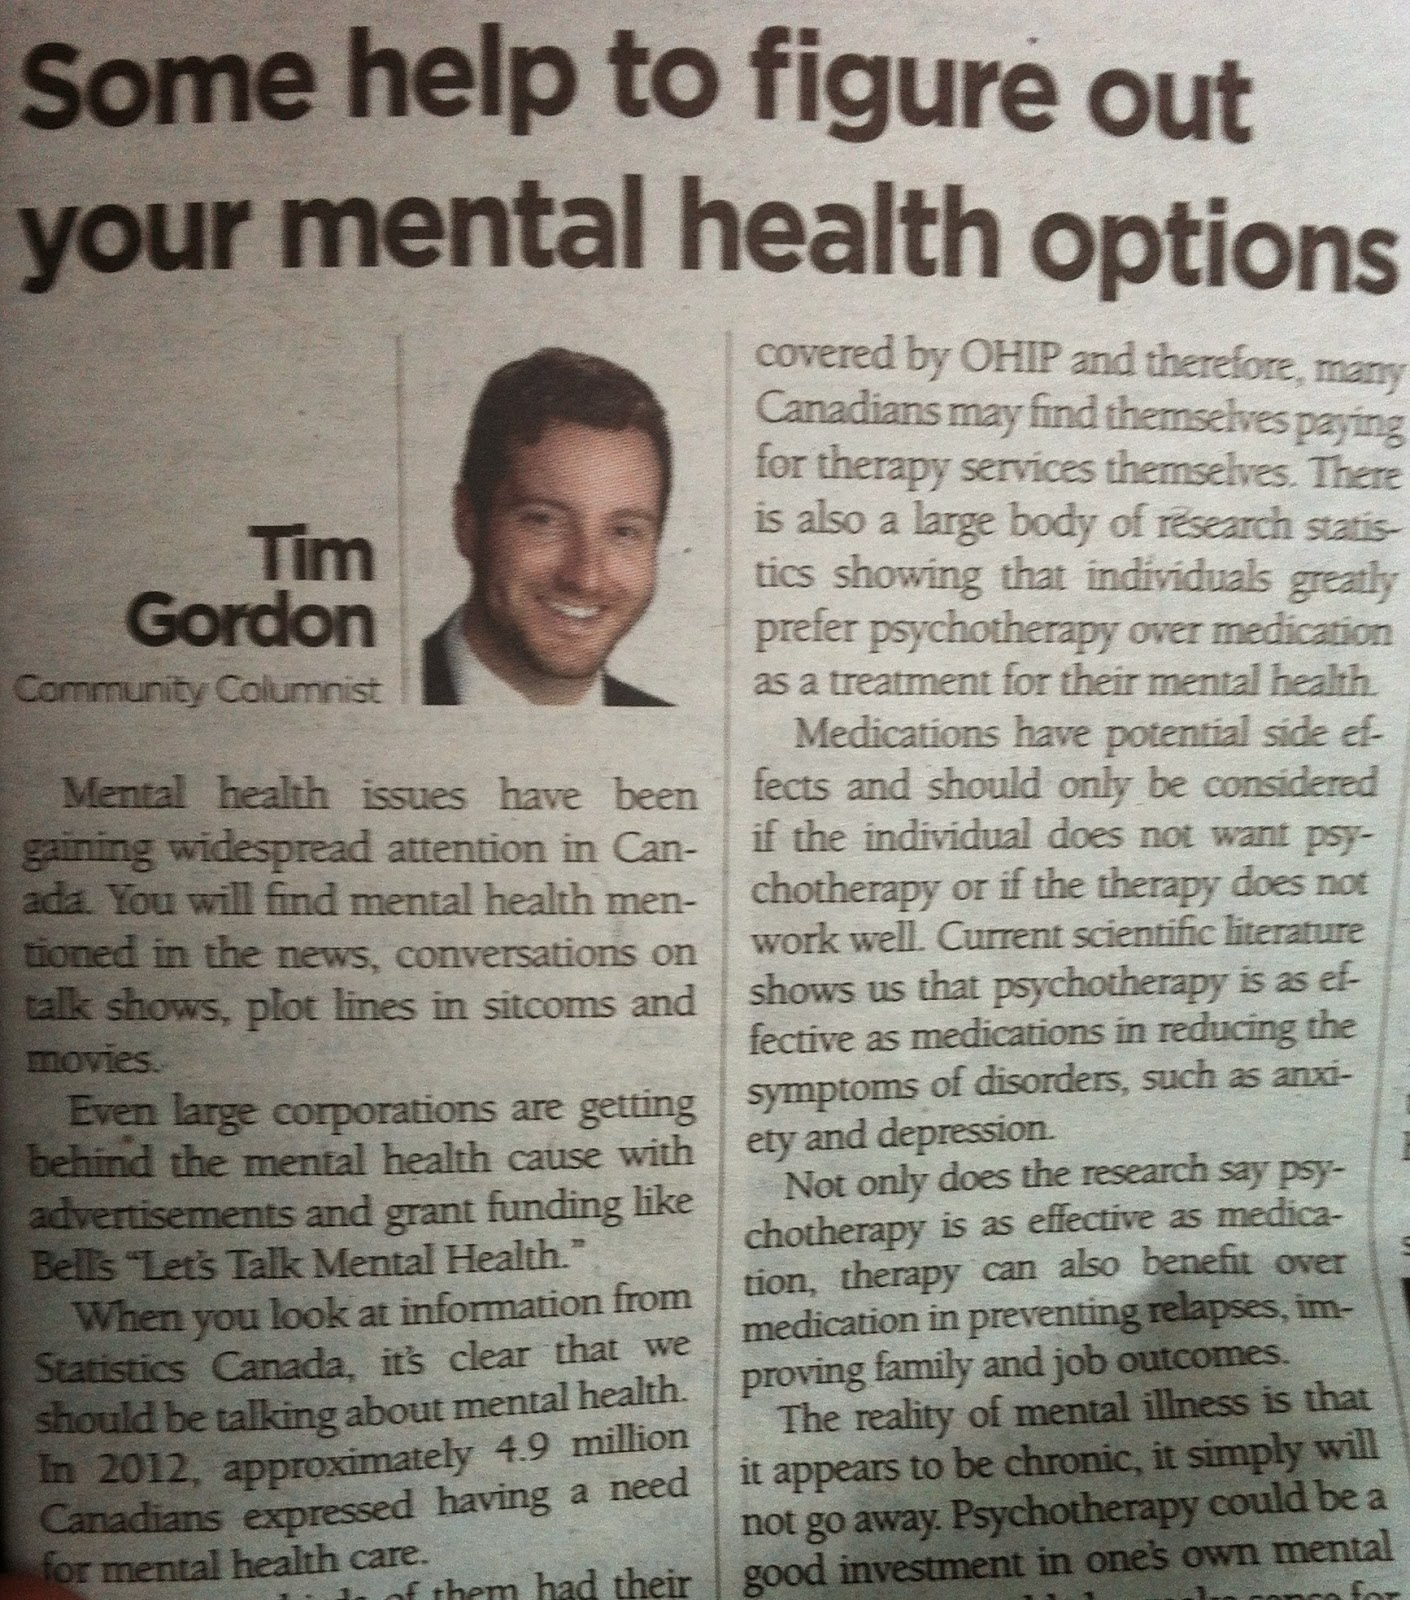 articles with mental healthiness issues